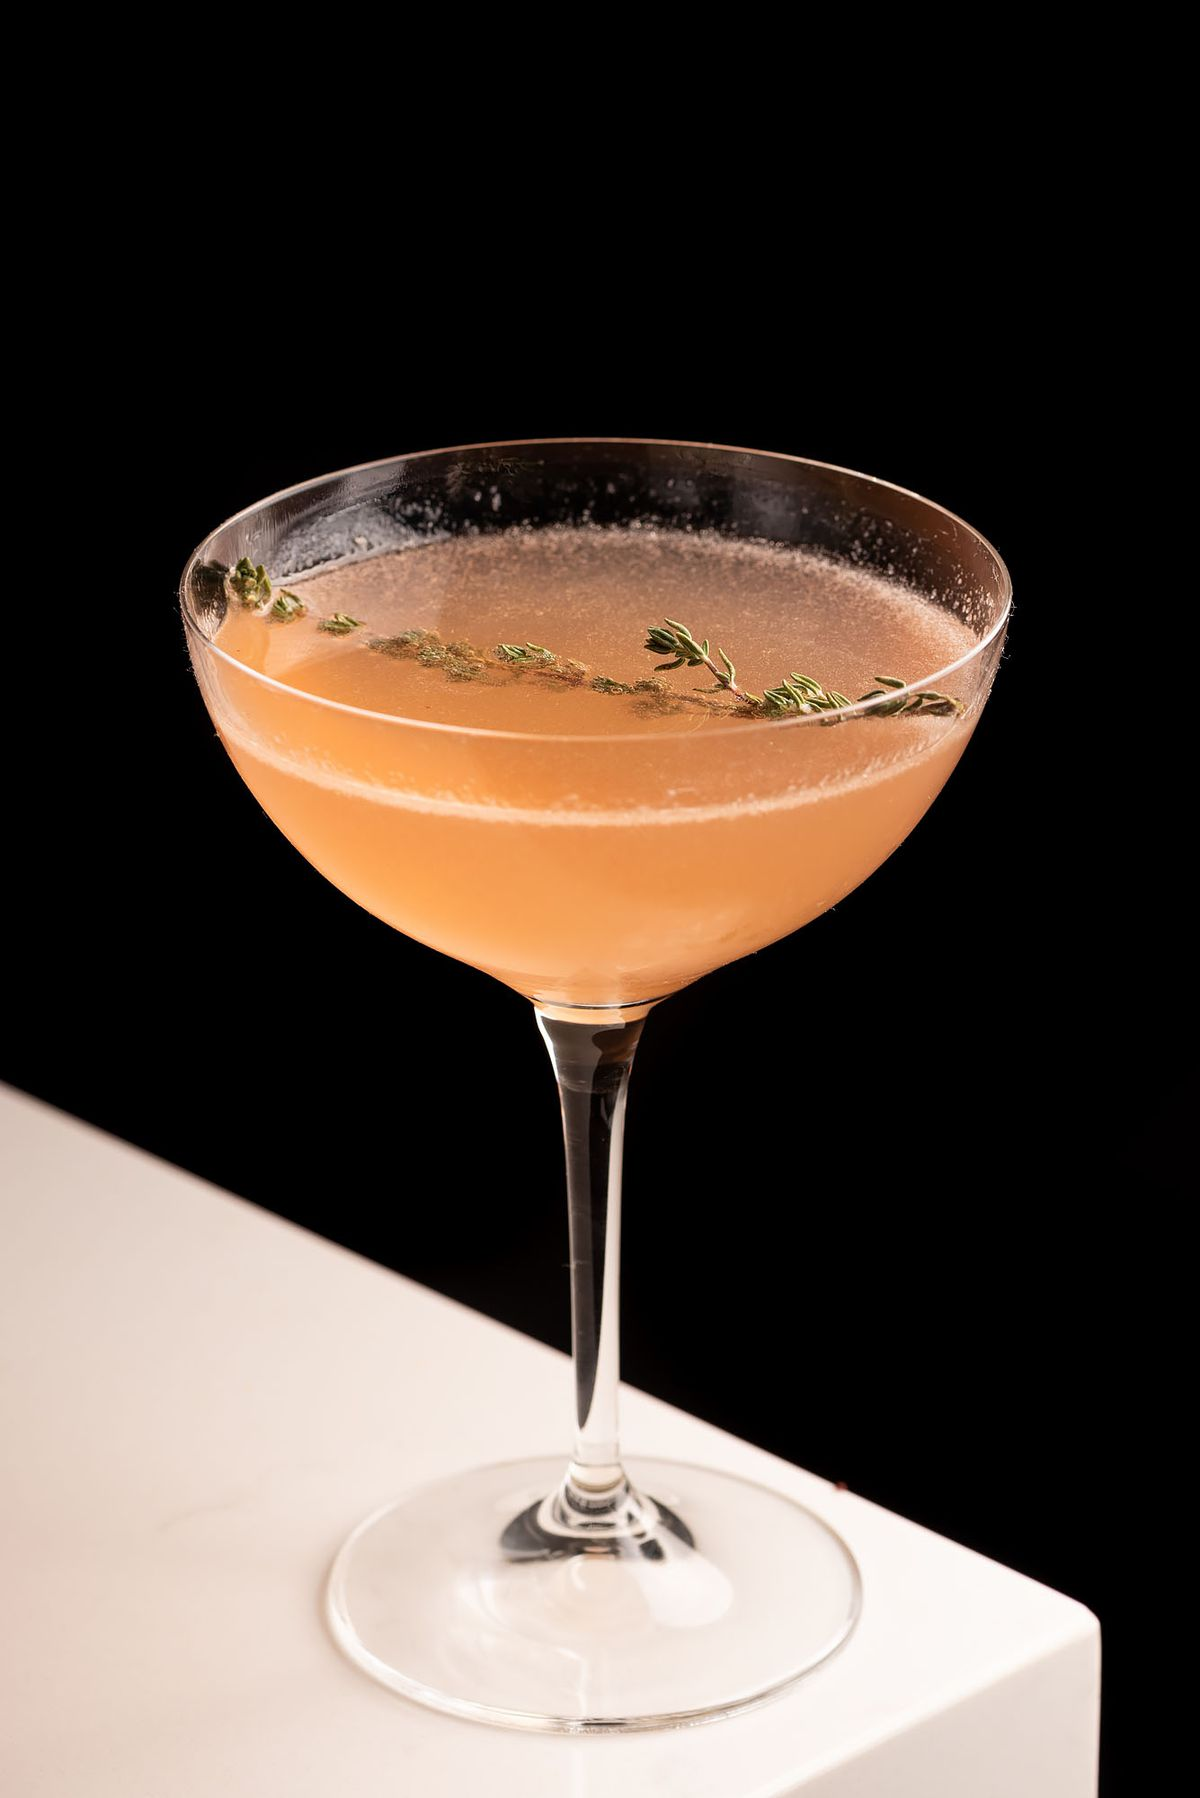 A light pink cocktail with a sprig of thyme.